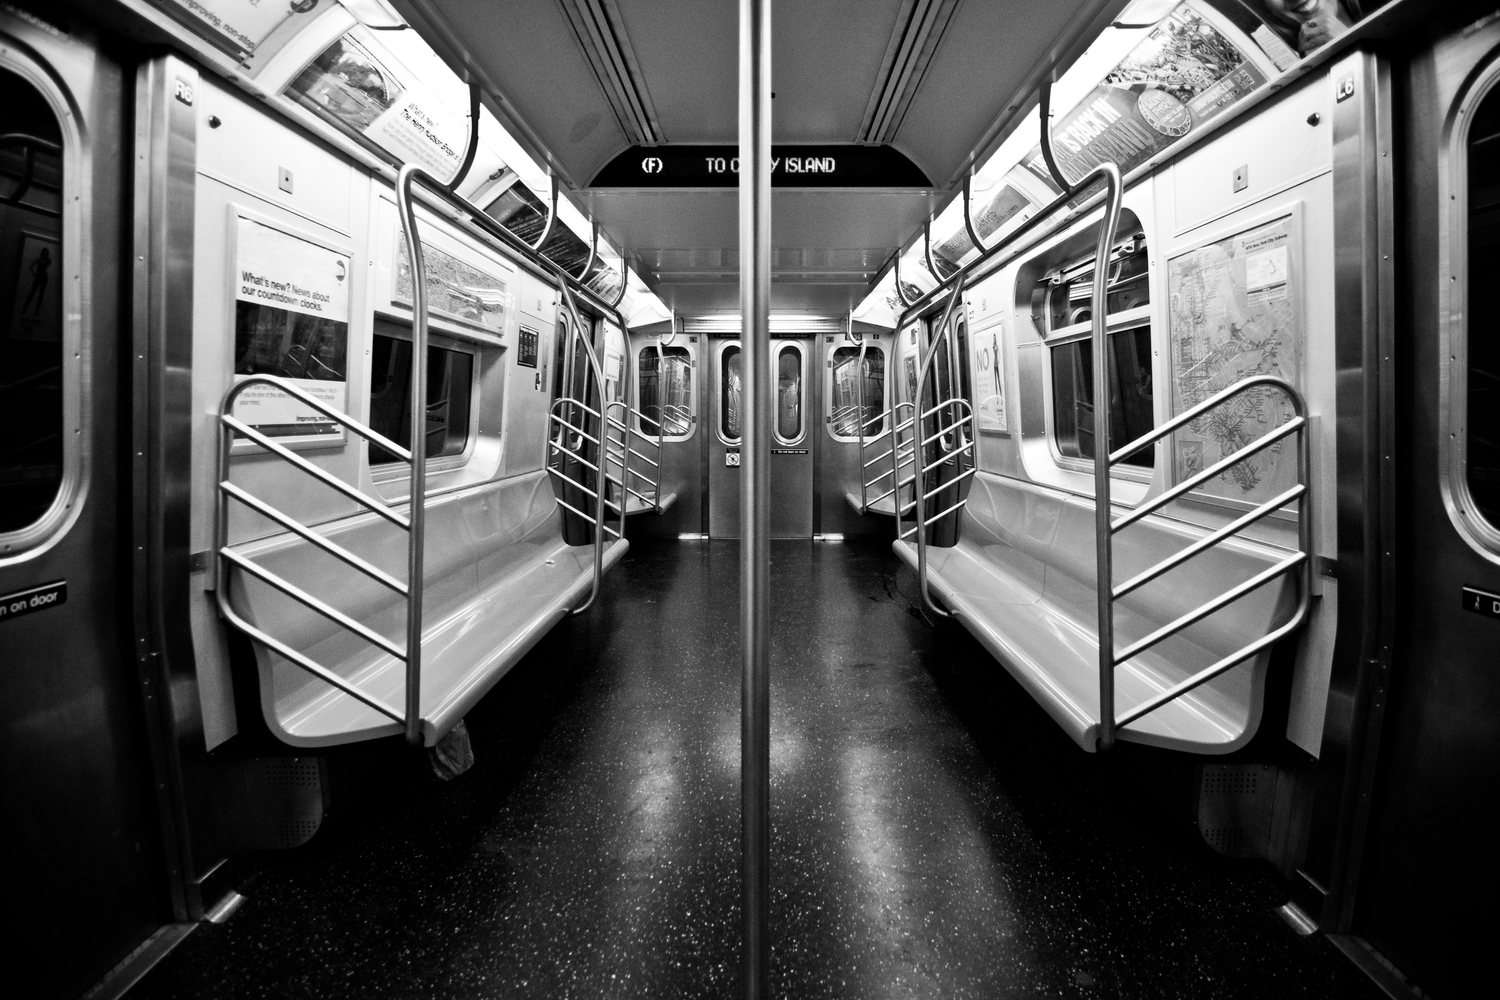 Modern Detachment | It was early in the morning, around 2AM. I just slept pass my stop by one freaking stop. I had to wait about 10 minutes in the freaking oven that is a MTA subway platform and was greeted by emptiness. I've always wanted to take a picture of an empty F train, and I finally got my chance.